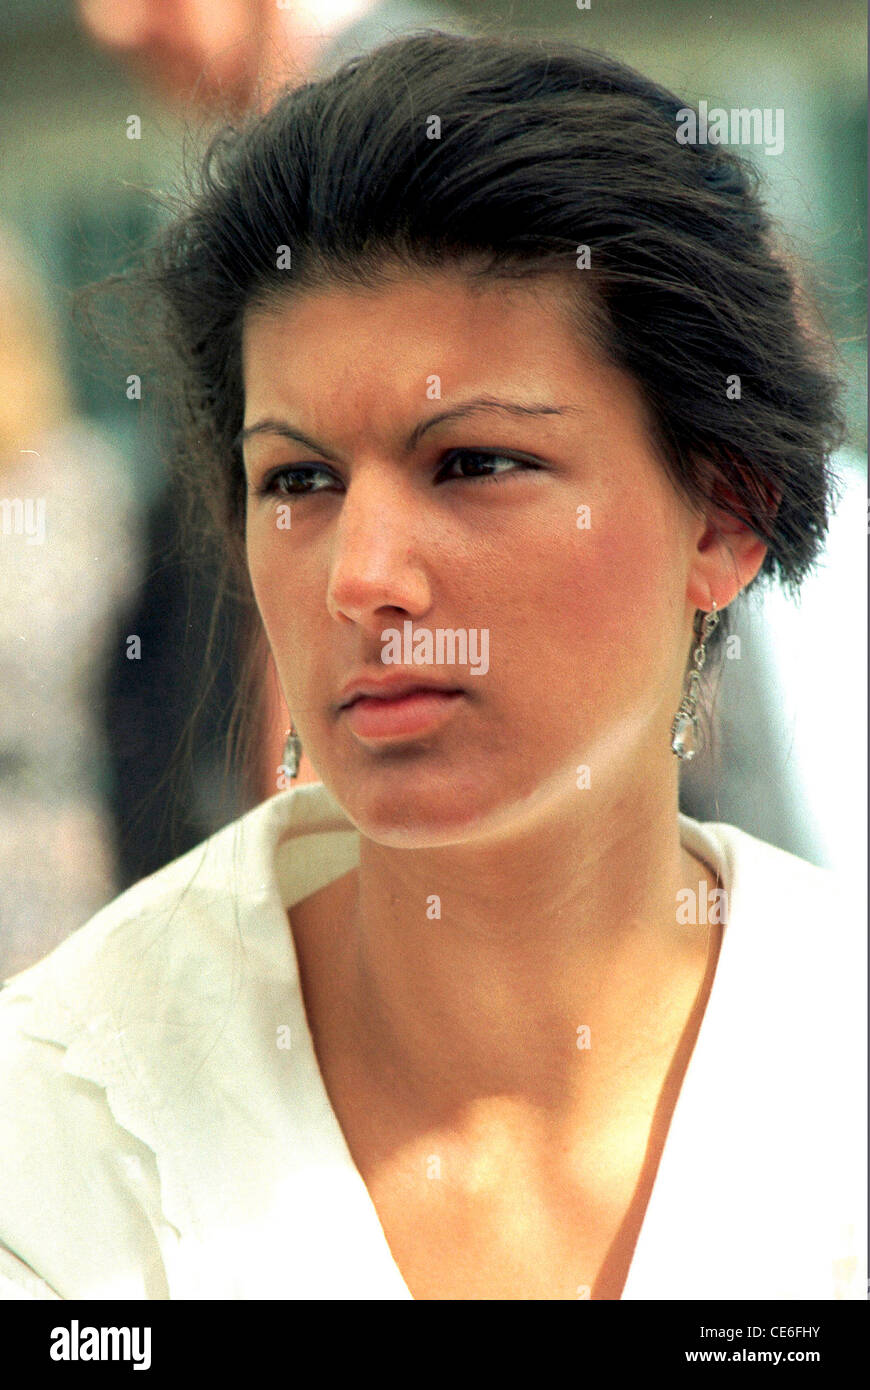 Sahra Wagenknecht  - * 16.07.1969: Representatives of the German Bundestag and acting Federal Chairmen of the Linkspartei. - Stock Image